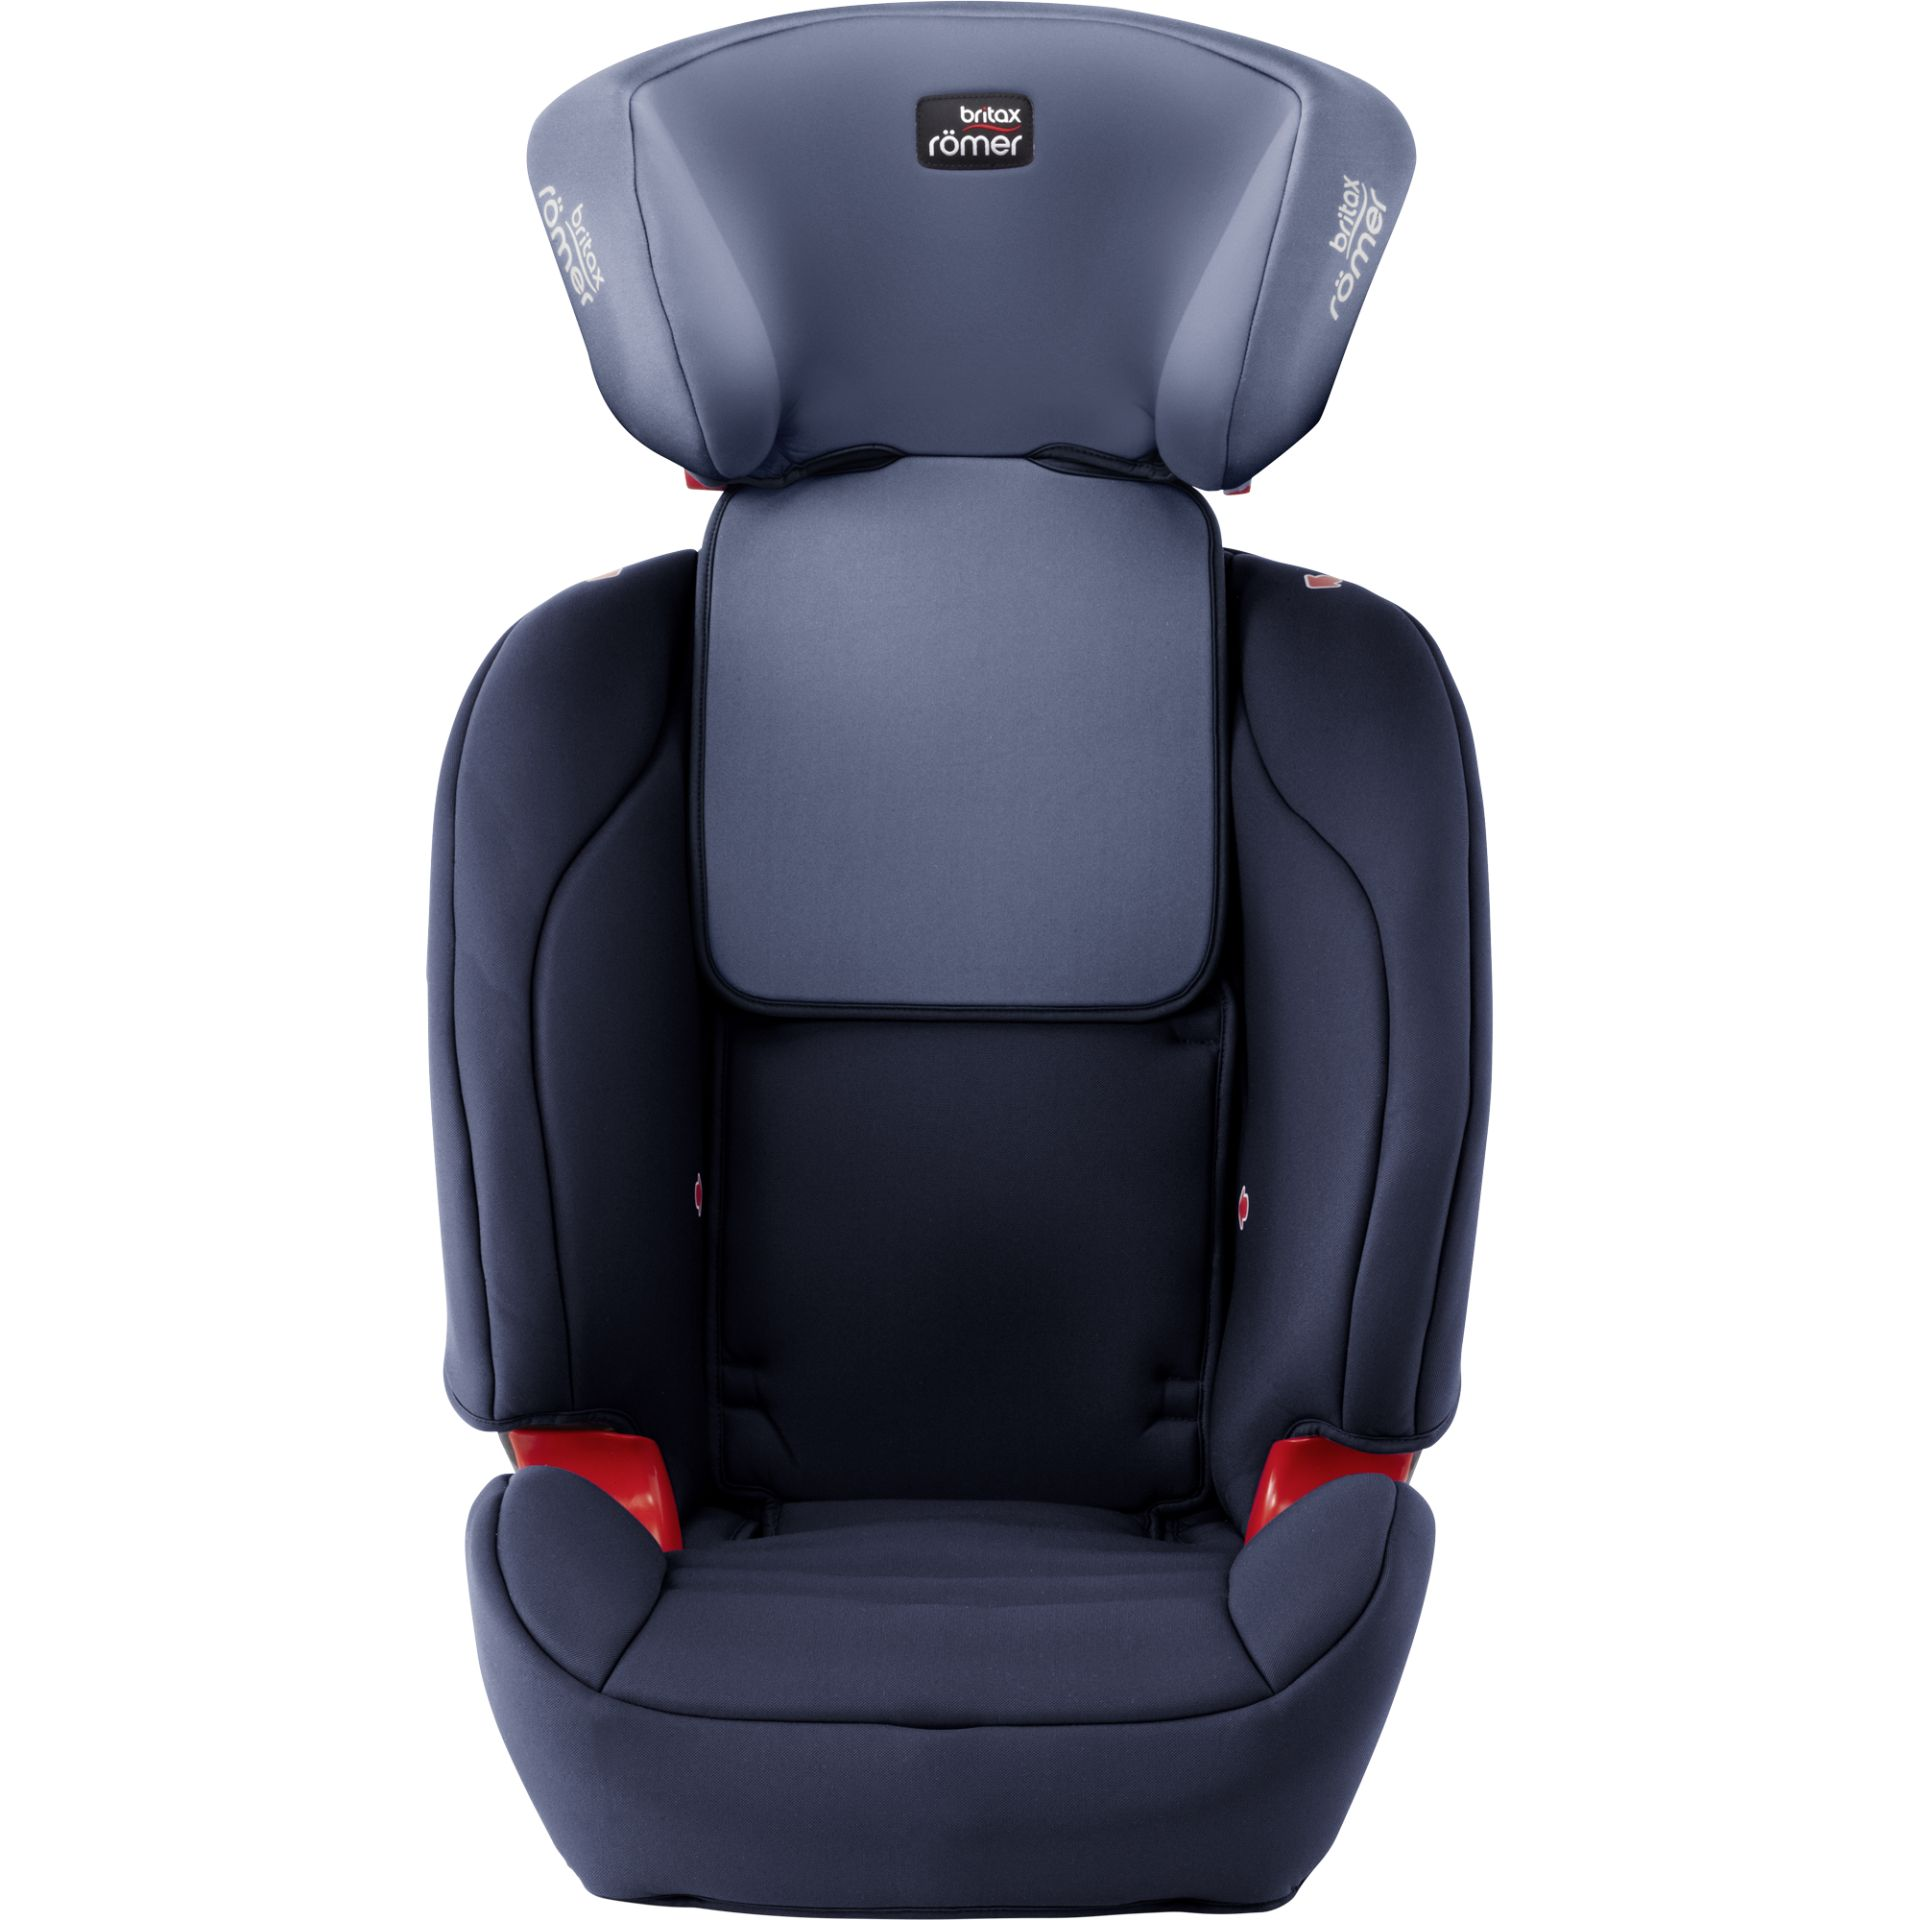 britax r mer evolva 1 2 3 sl sict isofix buy at kidsroom car seats. Black Bedroom Furniture Sets. Home Design Ideas